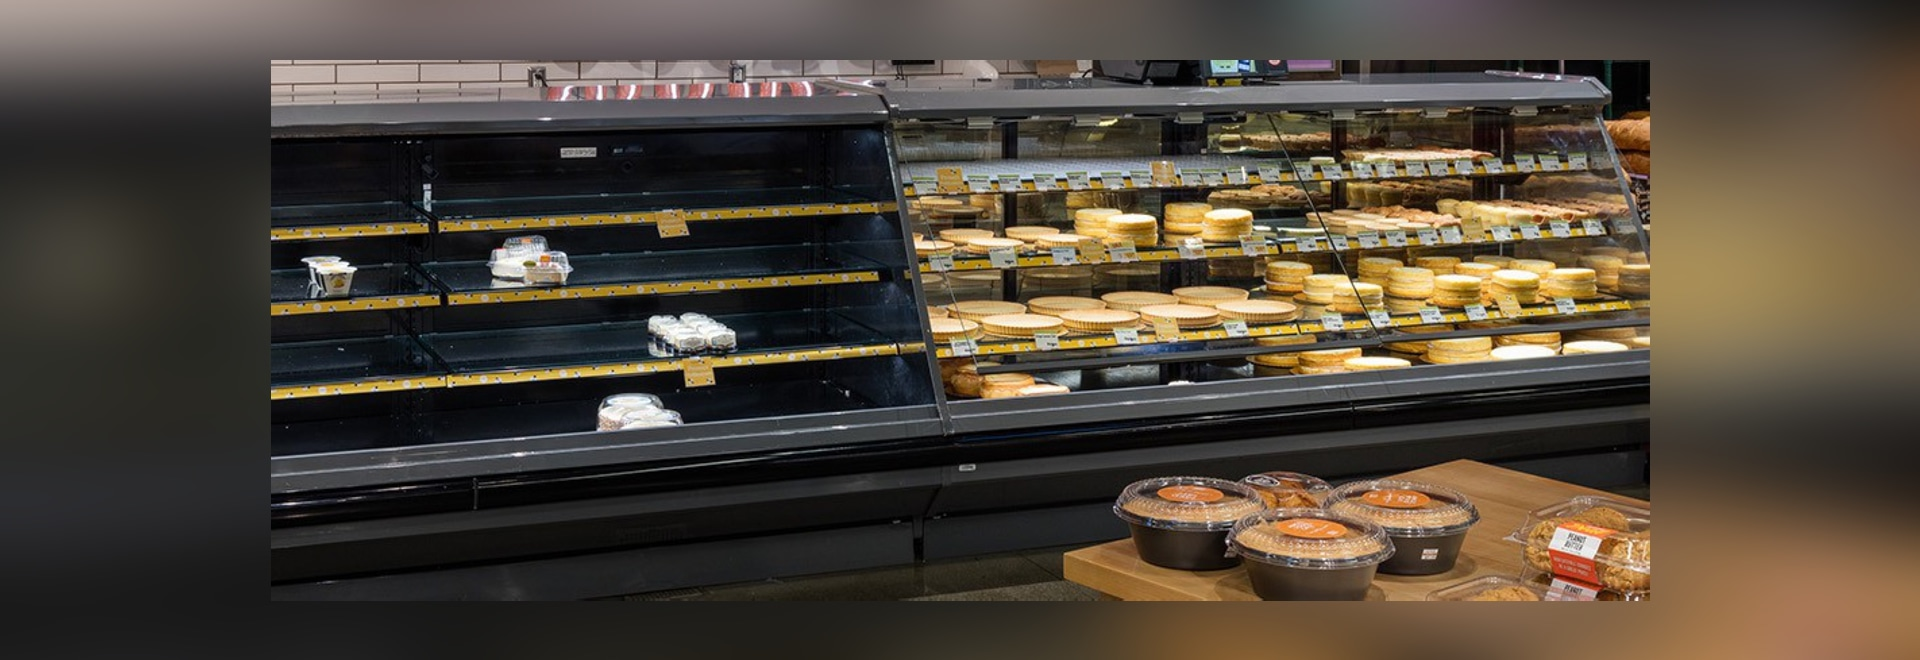 A Fremont, California Whole Foods Market demonstrated what a bakery department without bees would look like.